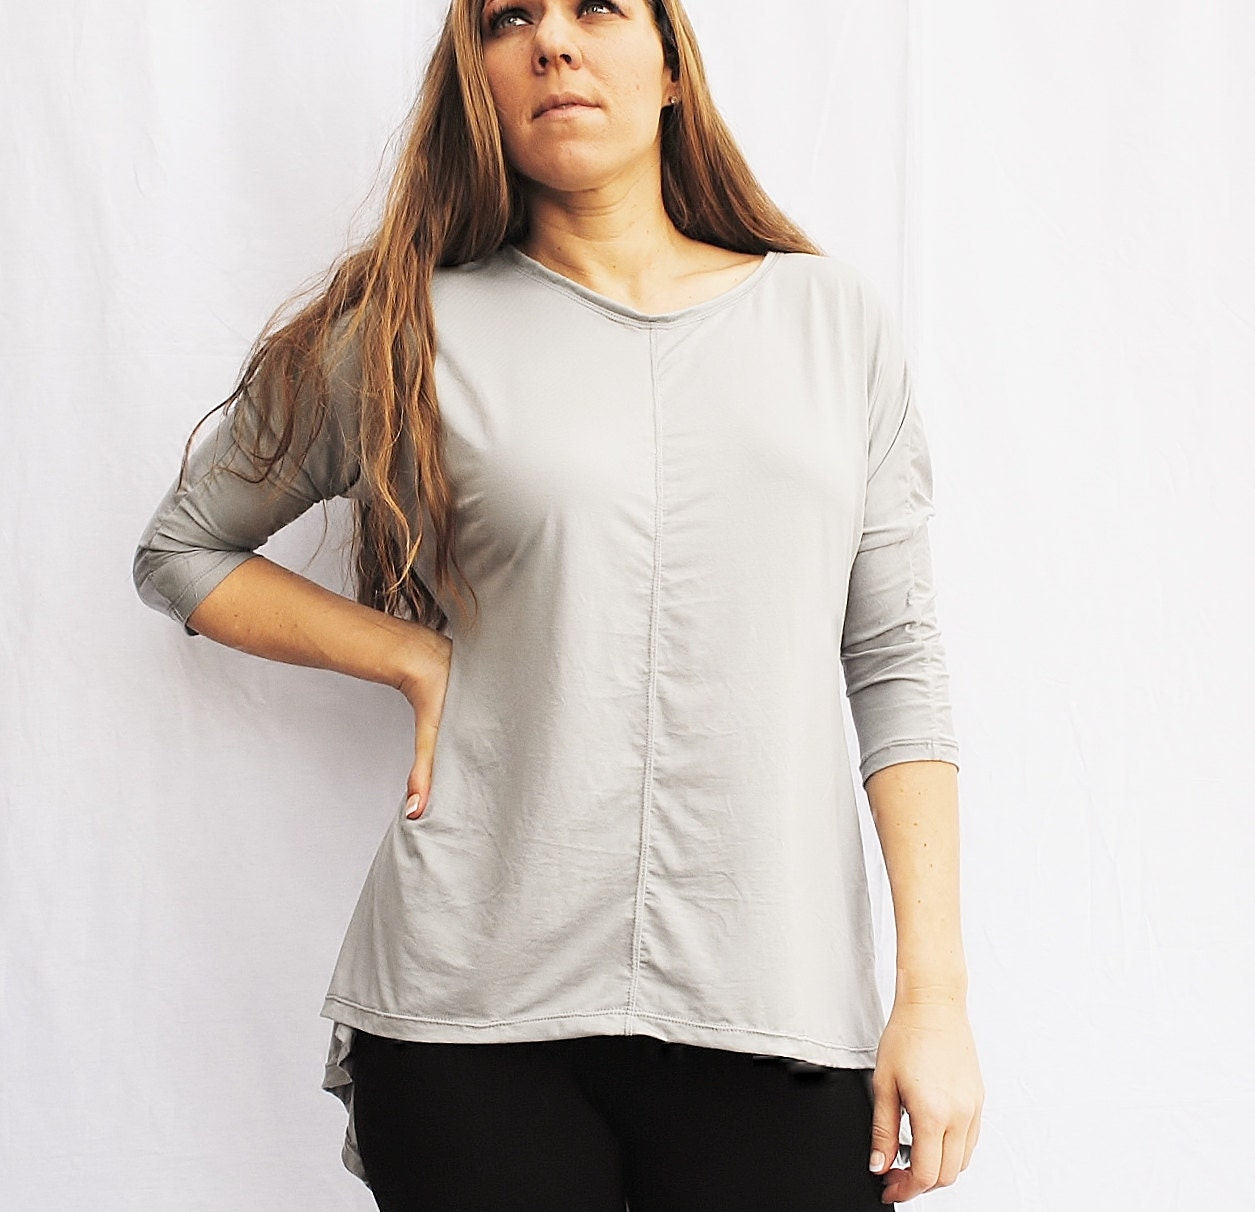 Womens Asymmetric Swing Top Organic Knit in Silver Light Gray - FineThreadz